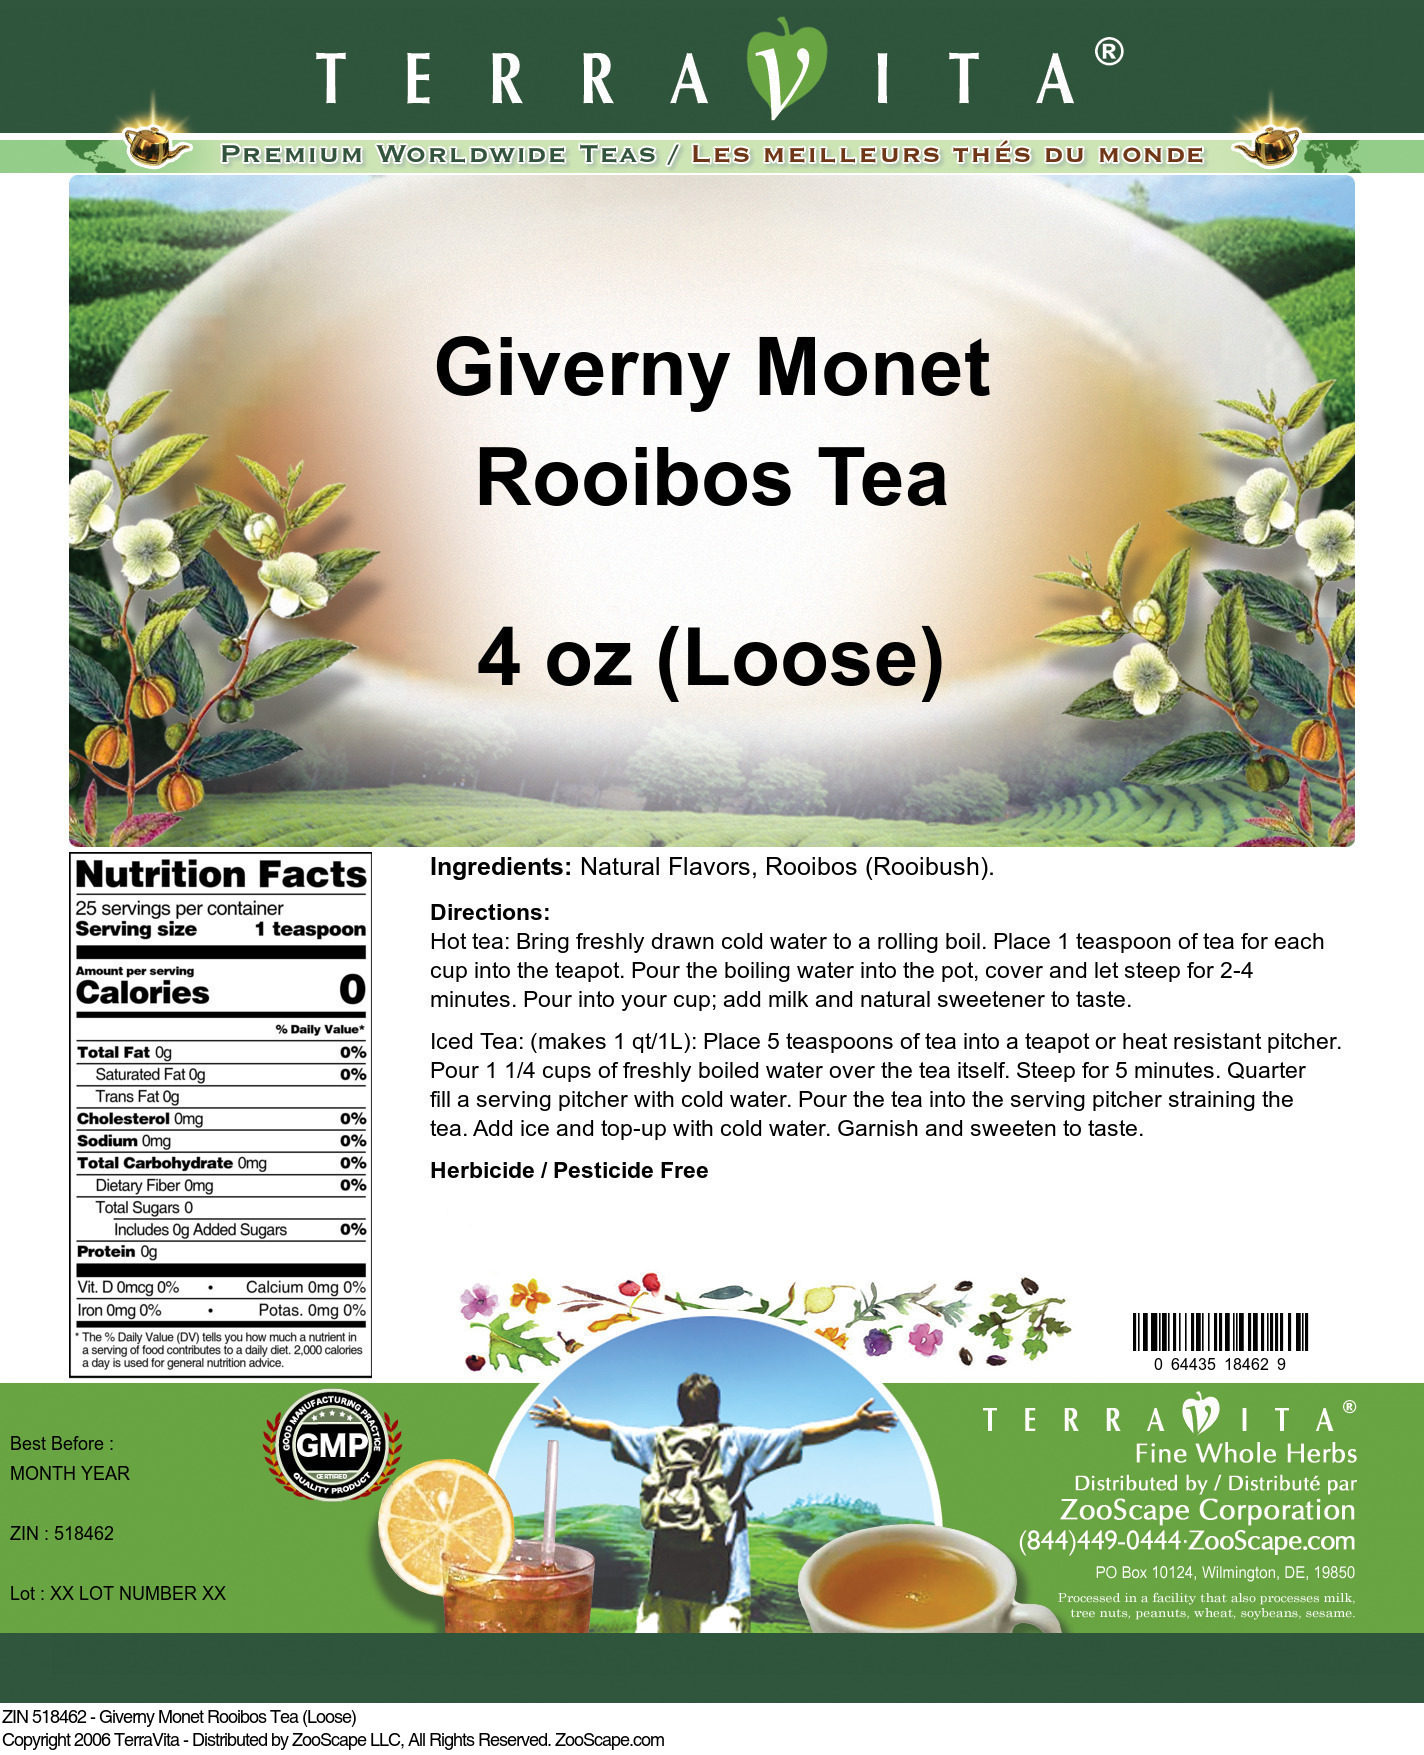 Giverny Monet Rooibos